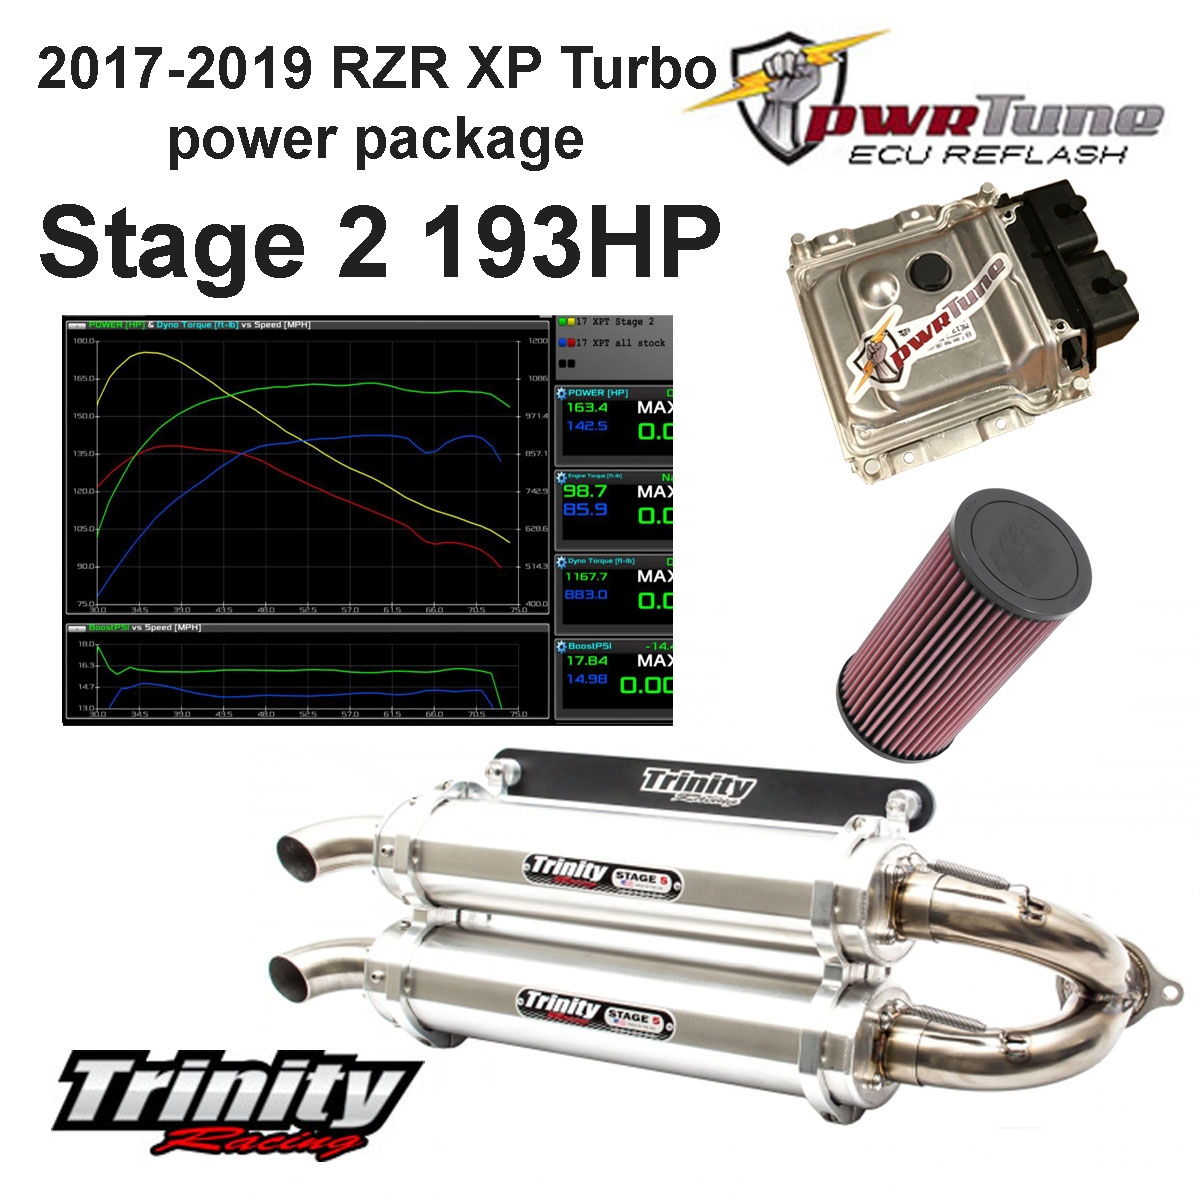 stage 2 performance package xp turbo 2017 2019